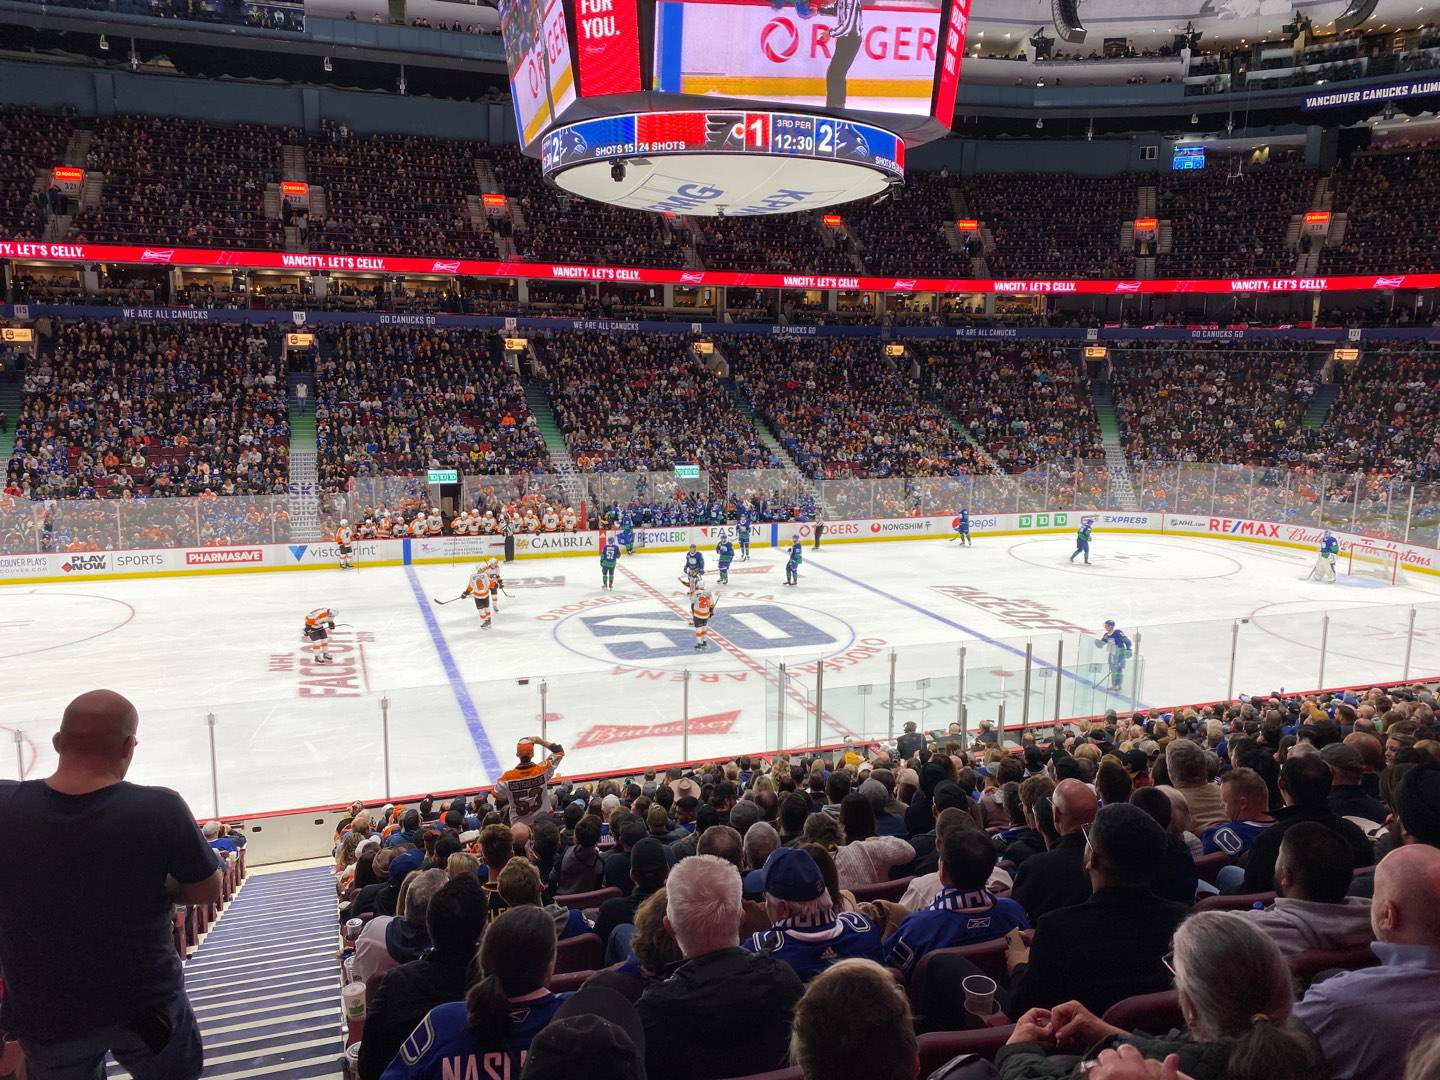 Rogers Arena Section 107 Row 20 Seat 1